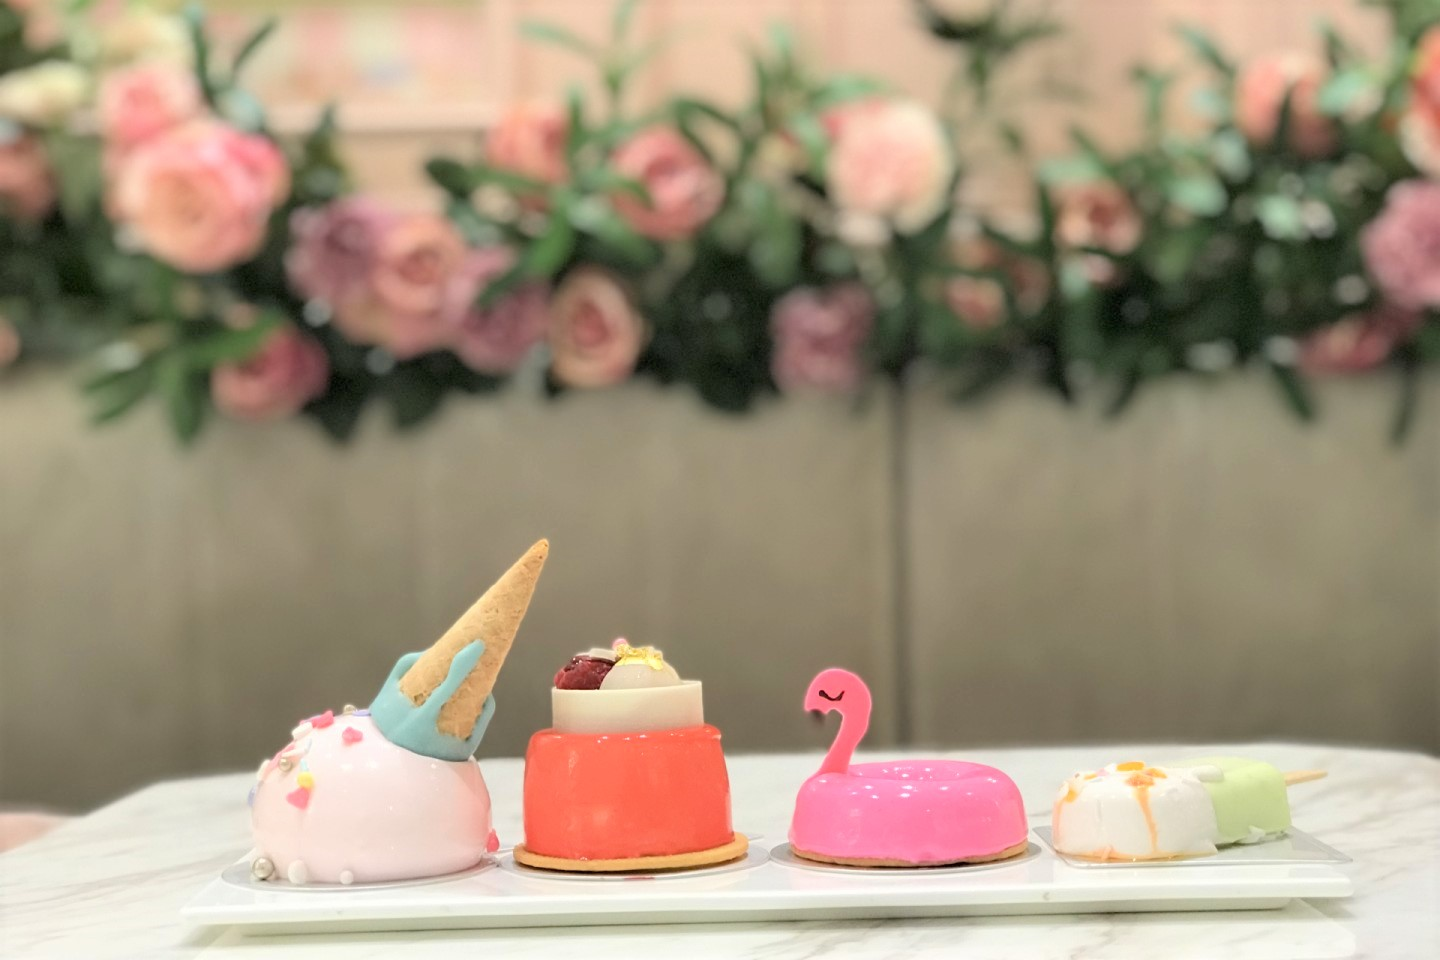 Vive Cake Boutique 中環